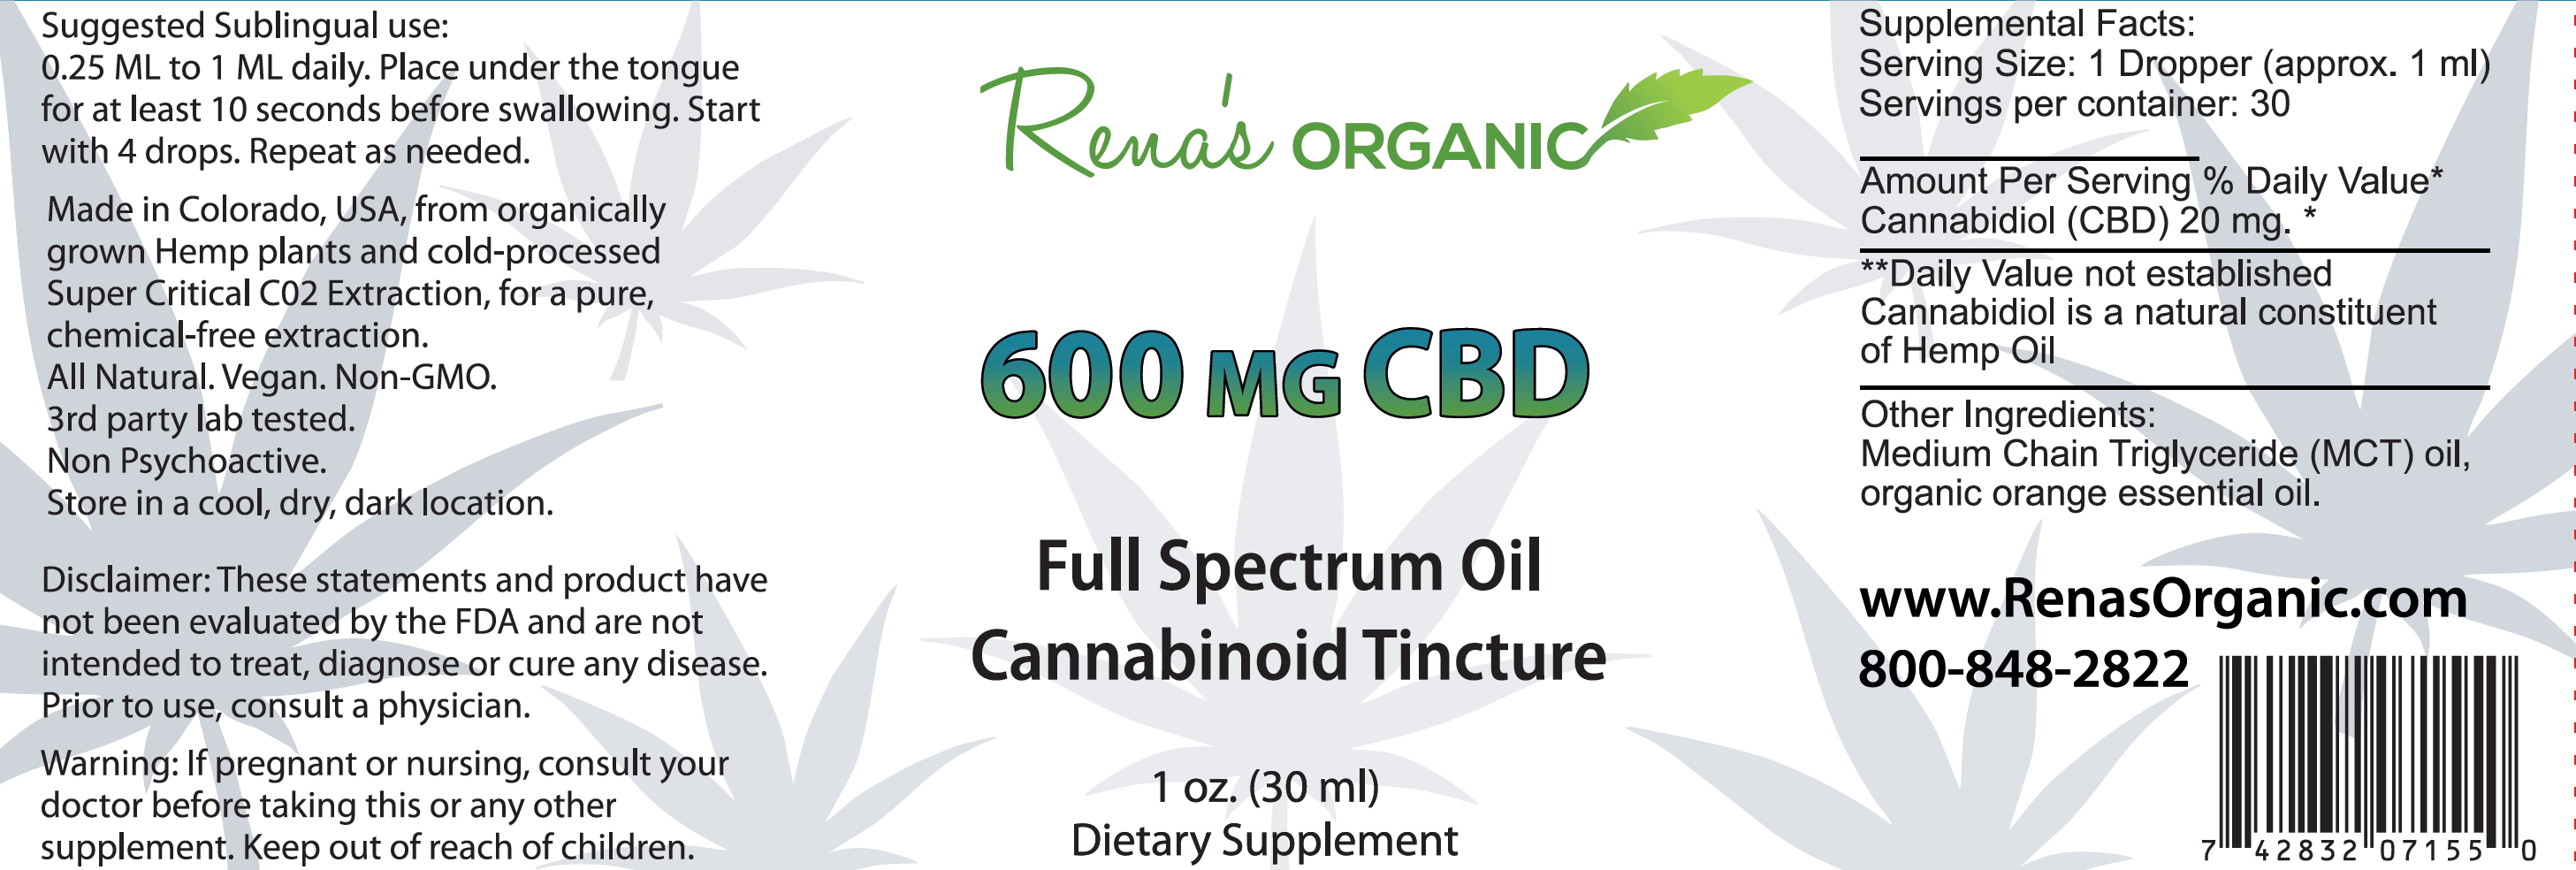 600 mg CBD tincture label